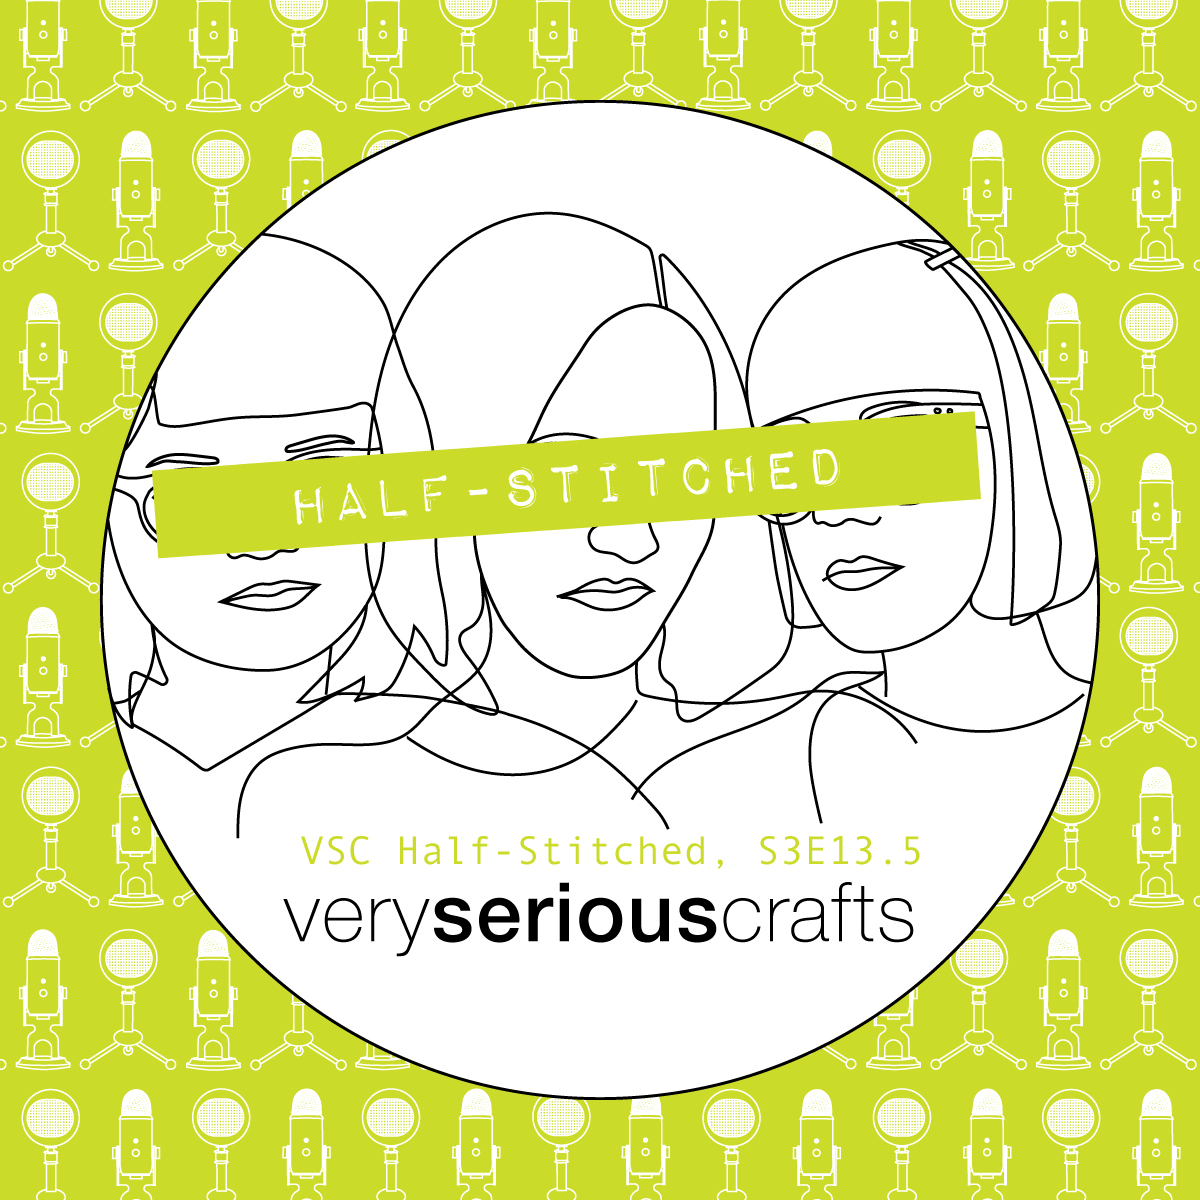 The Very Serious Crafts Podcast, Patreon Half-Stitched Episode S3E13.5